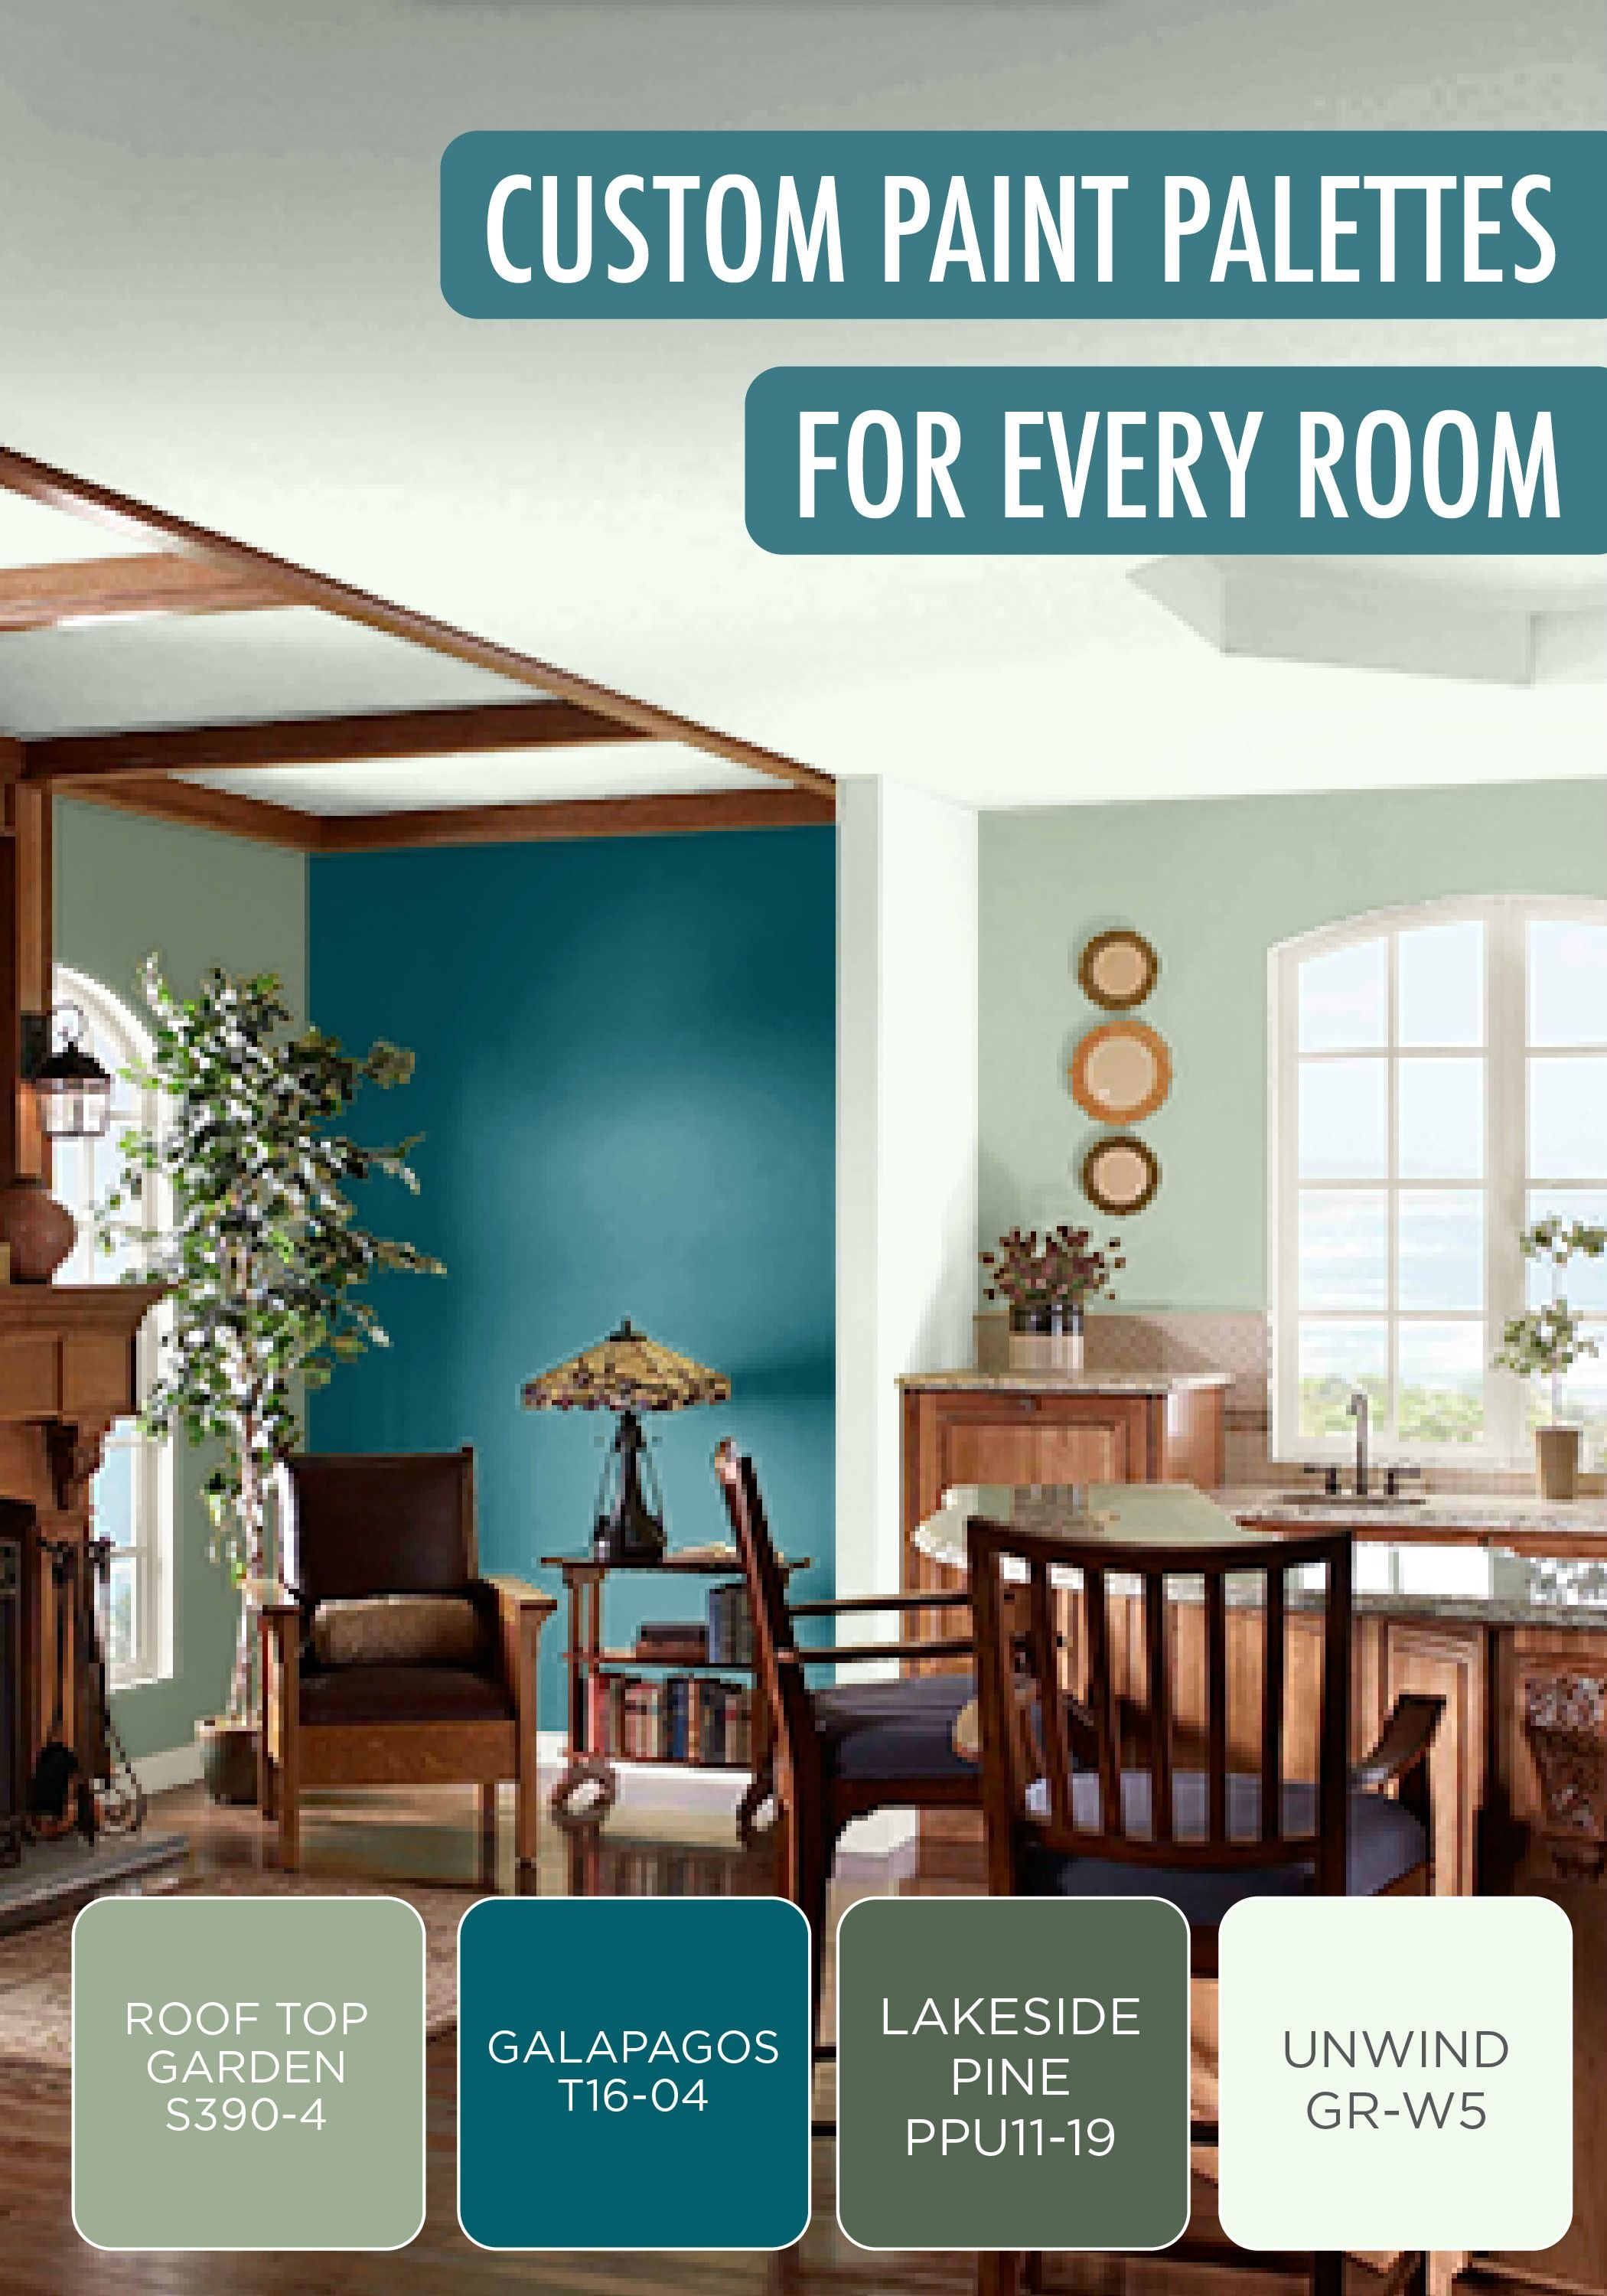 Sometimes Finding The Perfect Shade To Coat The Walls Of Your New Home With Can Be Challengin Living Room Colors Paint Colors For Living Room Living Room Warm